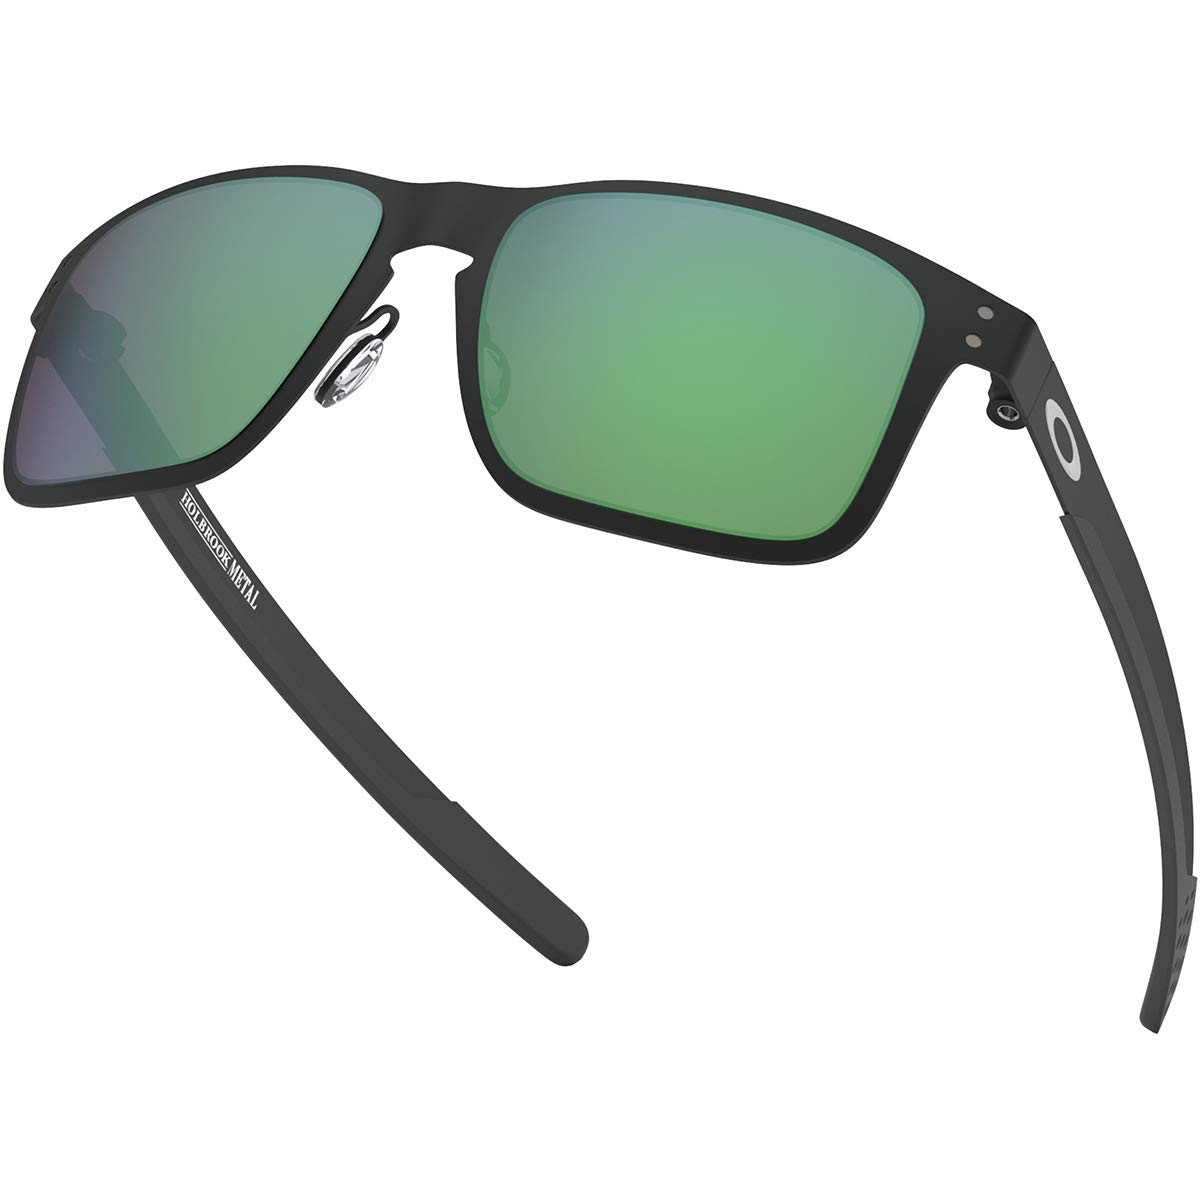 5da874c157 Amazon.com  Oakley Men s Holbrook Metal Non-Polarized Iridium Square Sunglasses  MATTE BLACK 55.0 mm  Oakley  Clothing